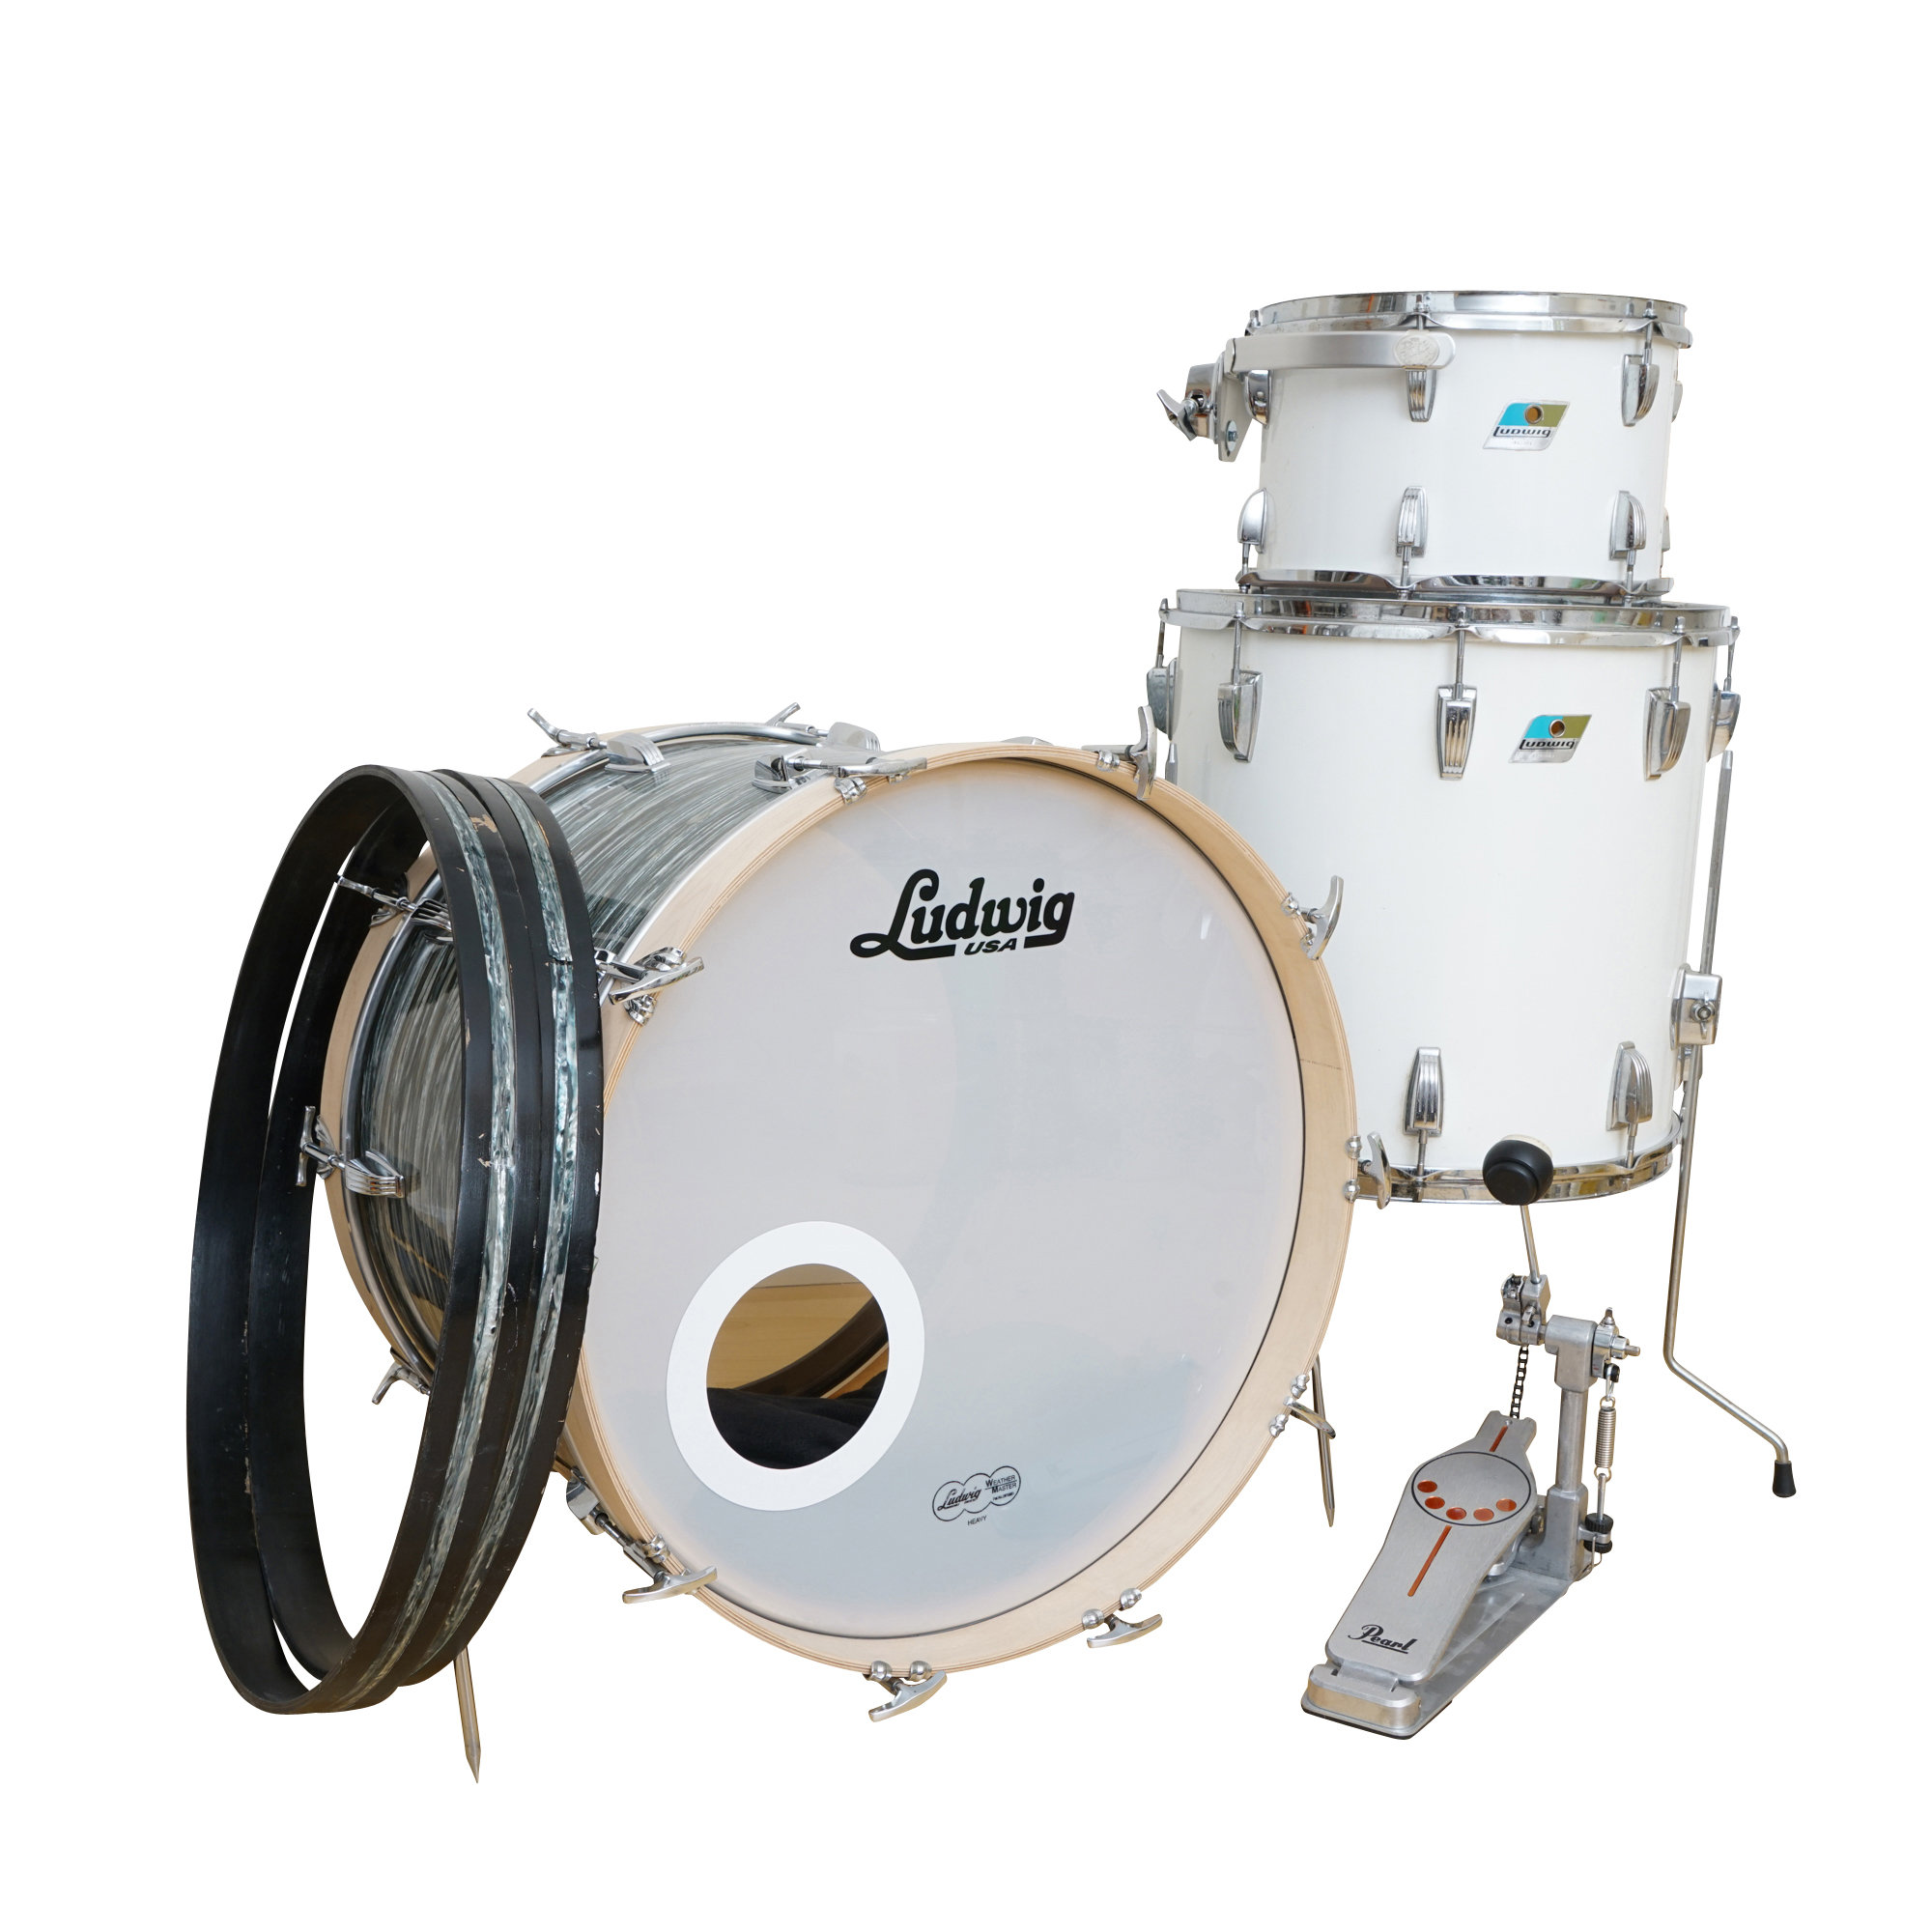 Partial Ludwig Drum Set with Pearl Drum Pedal   EBTH Partial Ludwig Drum Set with Pearl Drum Pedal